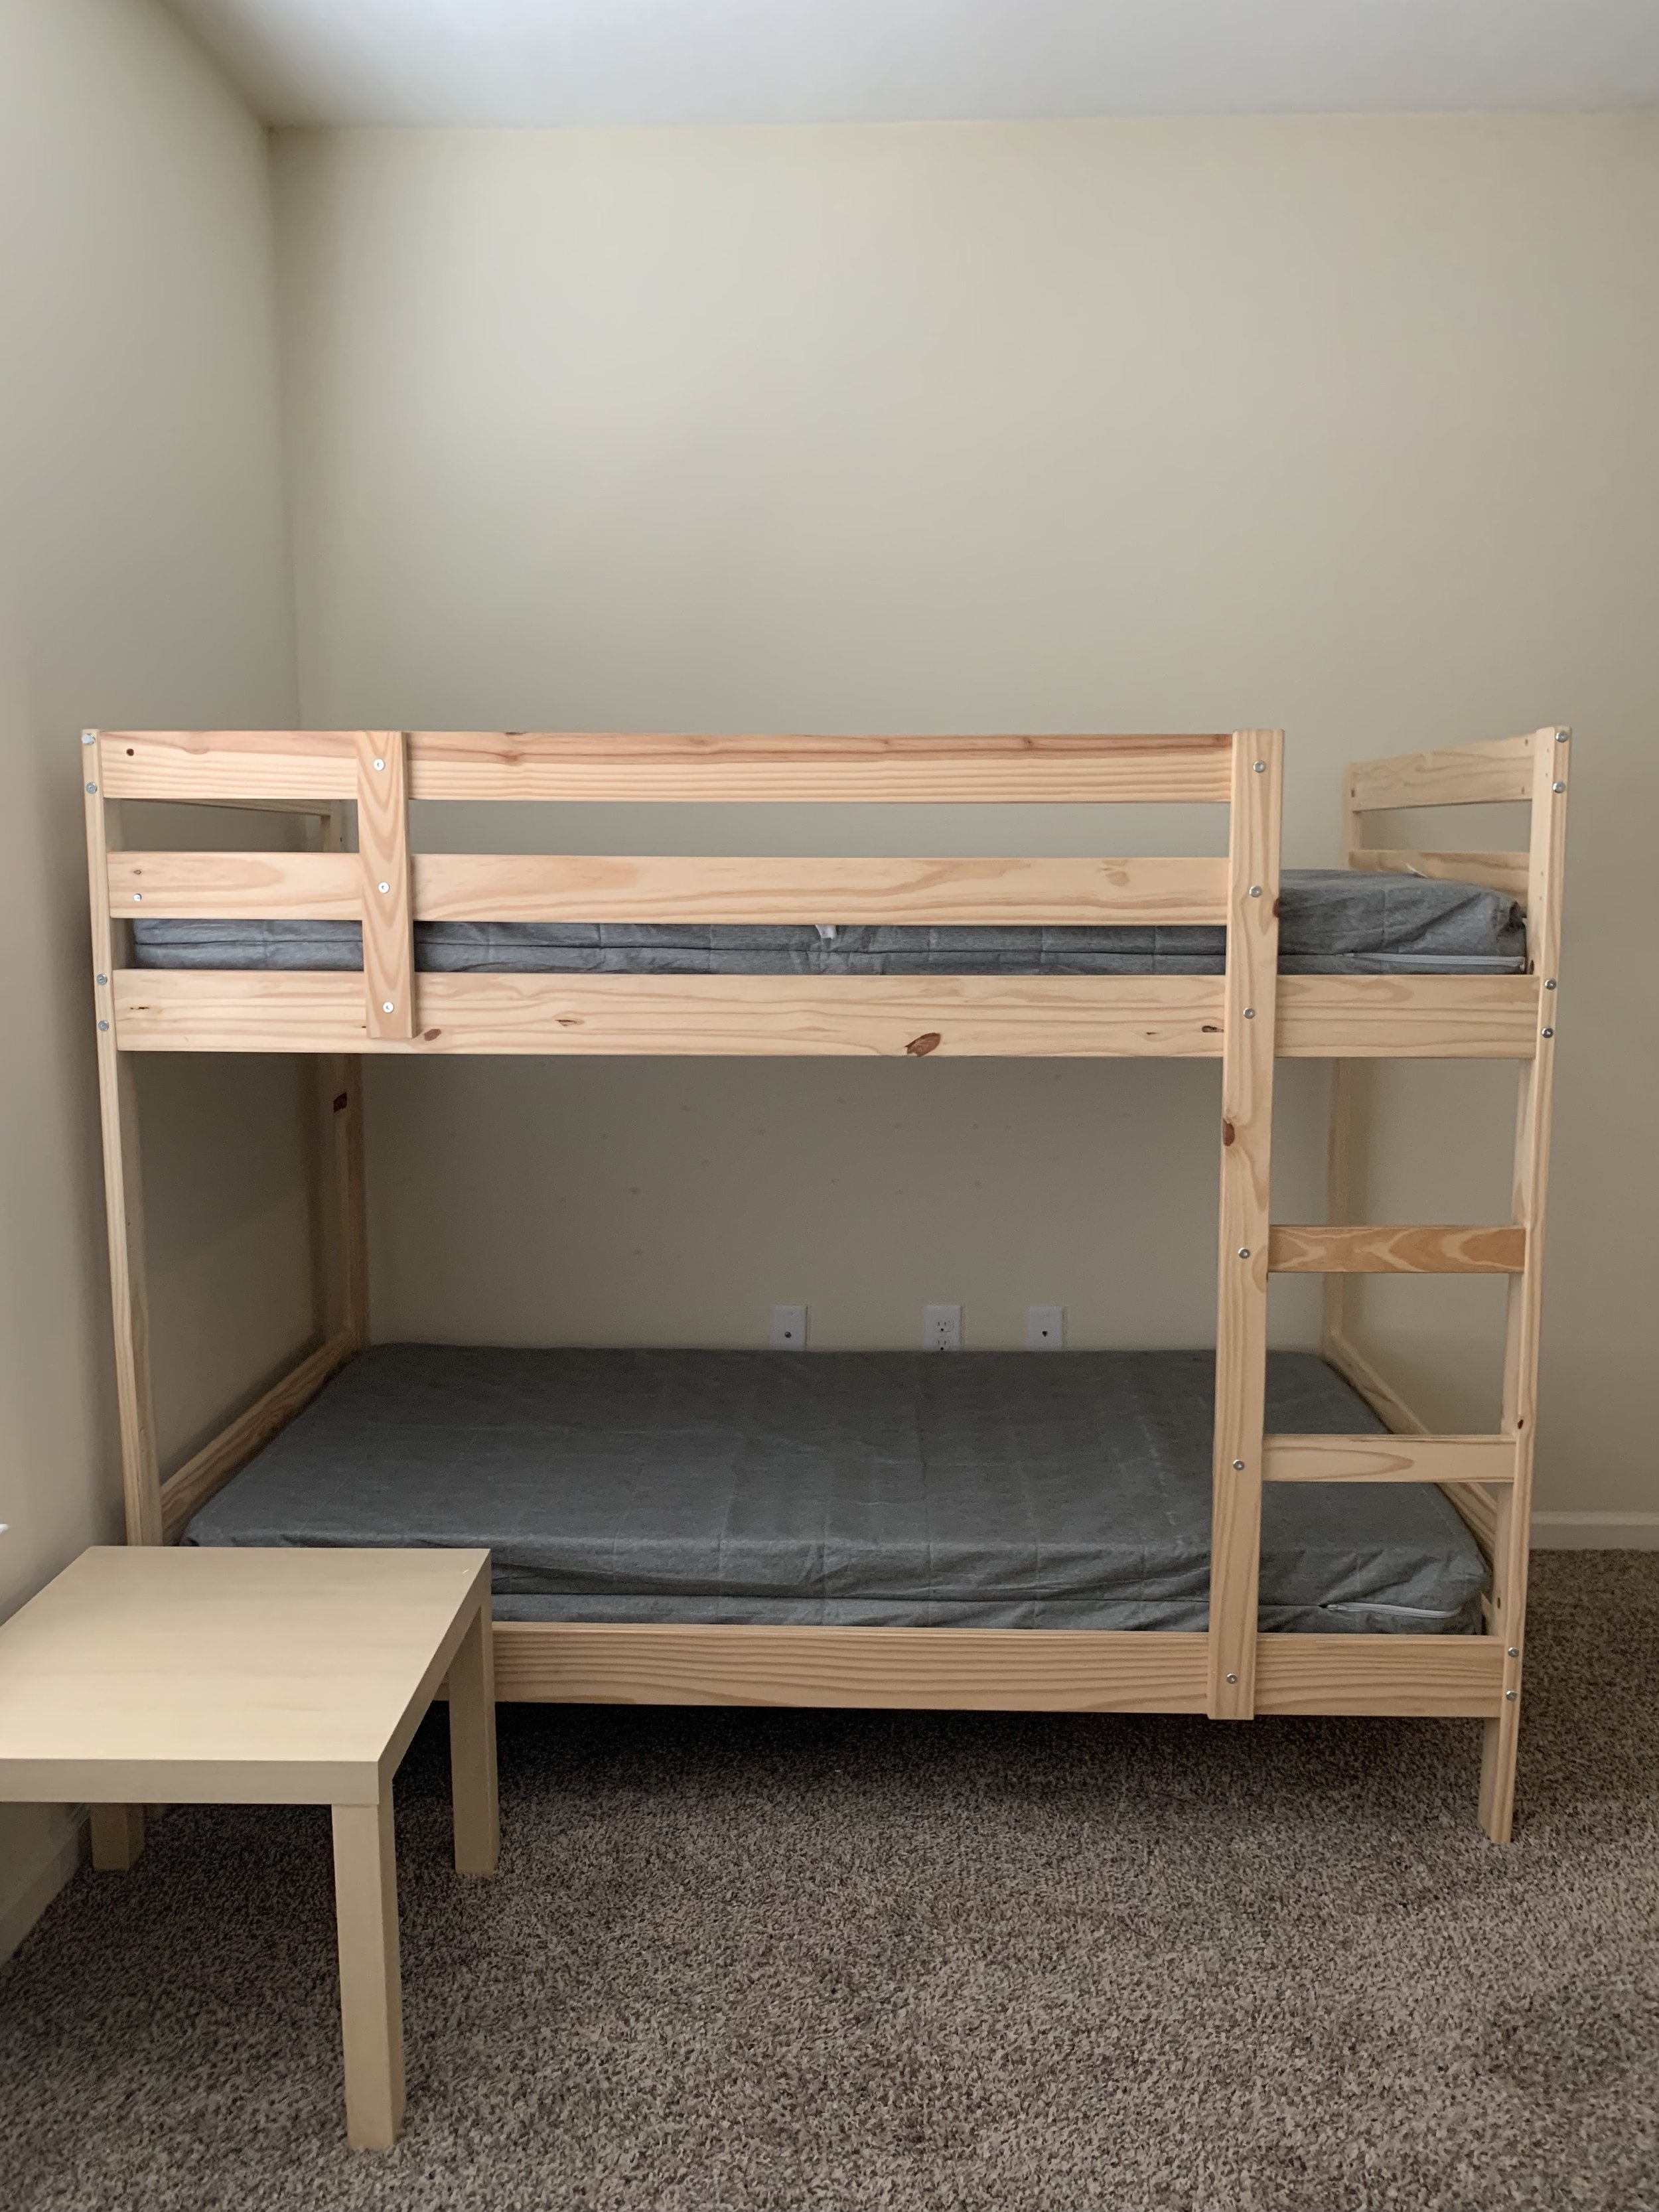 Bunk Beds 2 $90 - Claimed